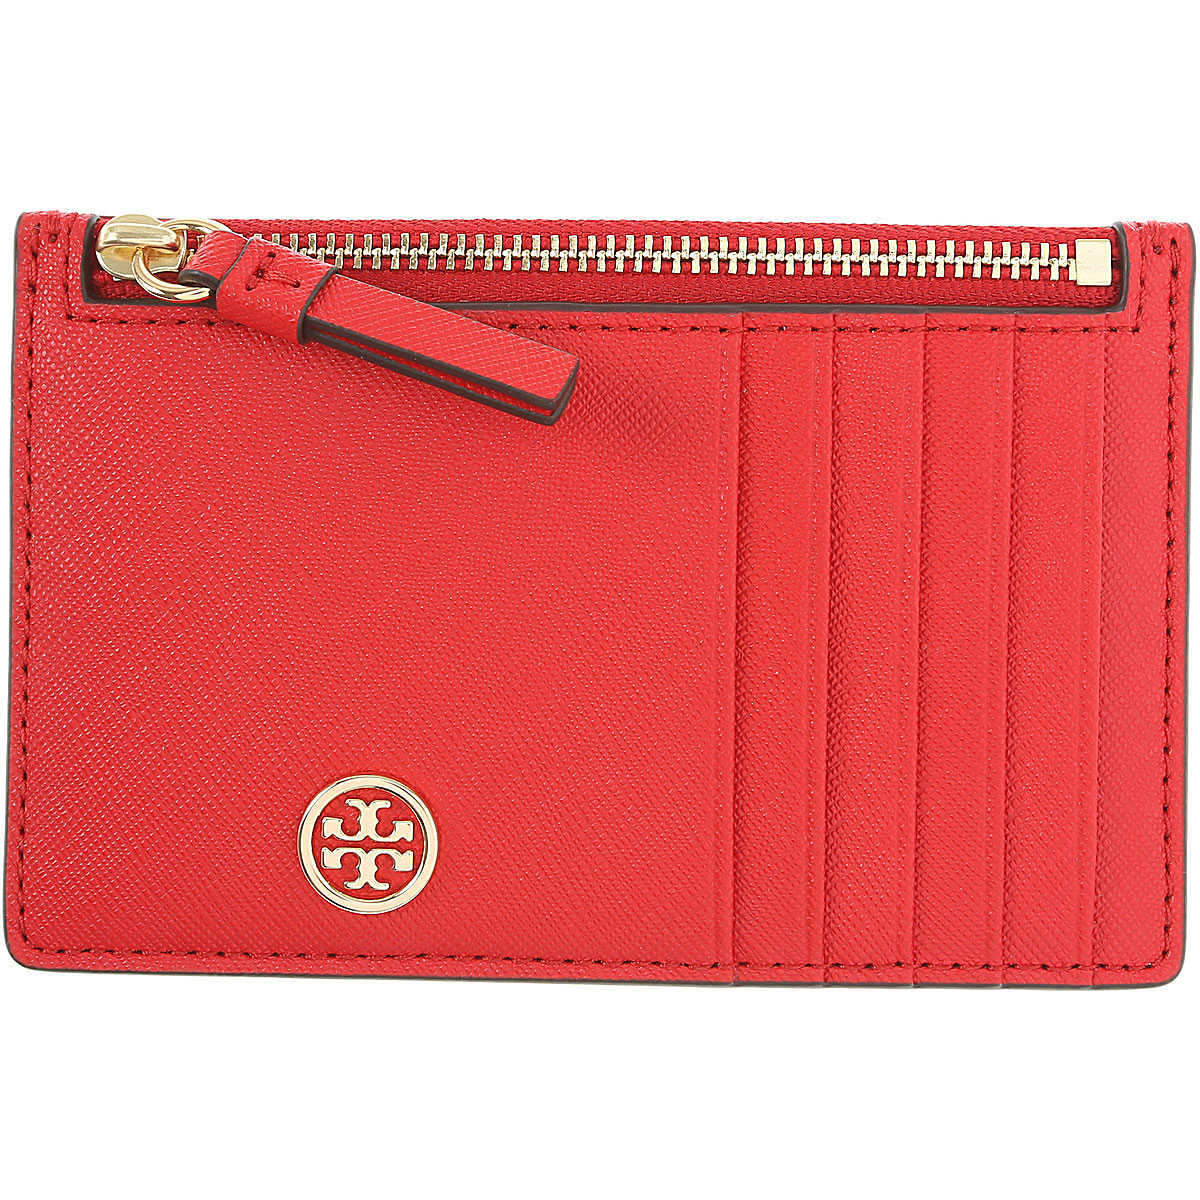 Tory Burch Card Holder for Women On Sale Brilliant Red DK - GOOFASH -